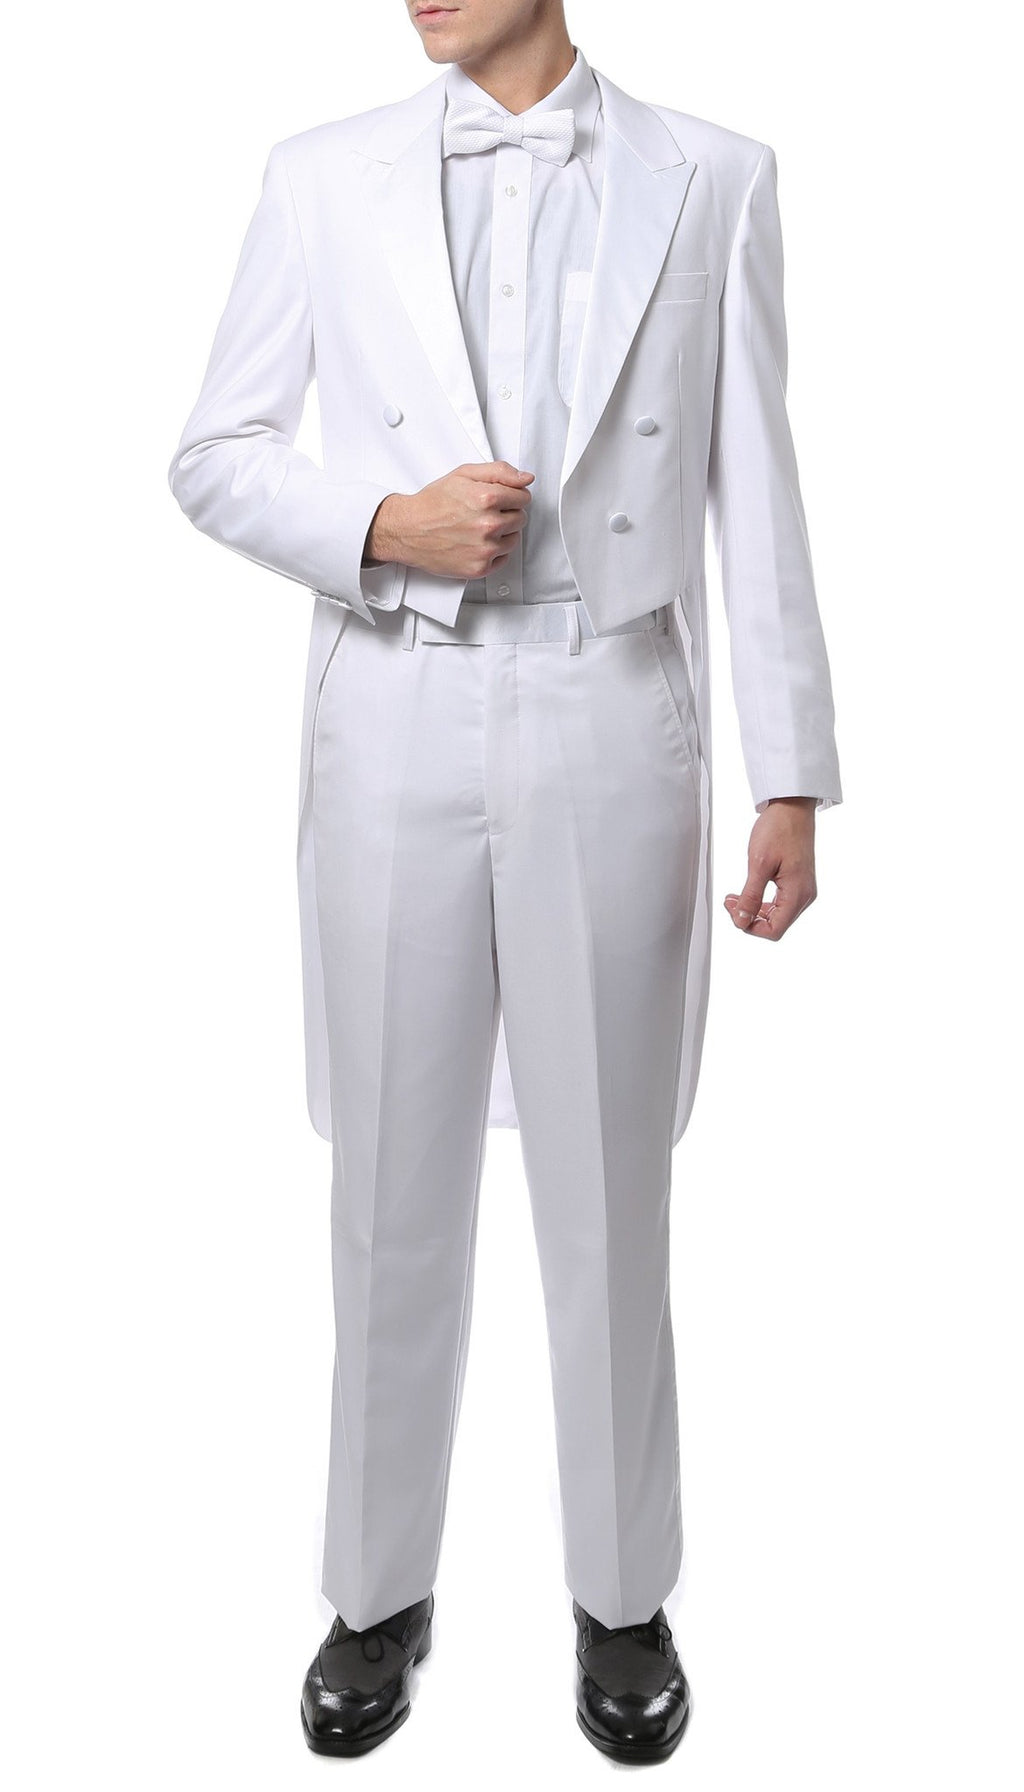 Premium A201 Regular Fit White Tail Tuxedo - Giorgio's Menswear